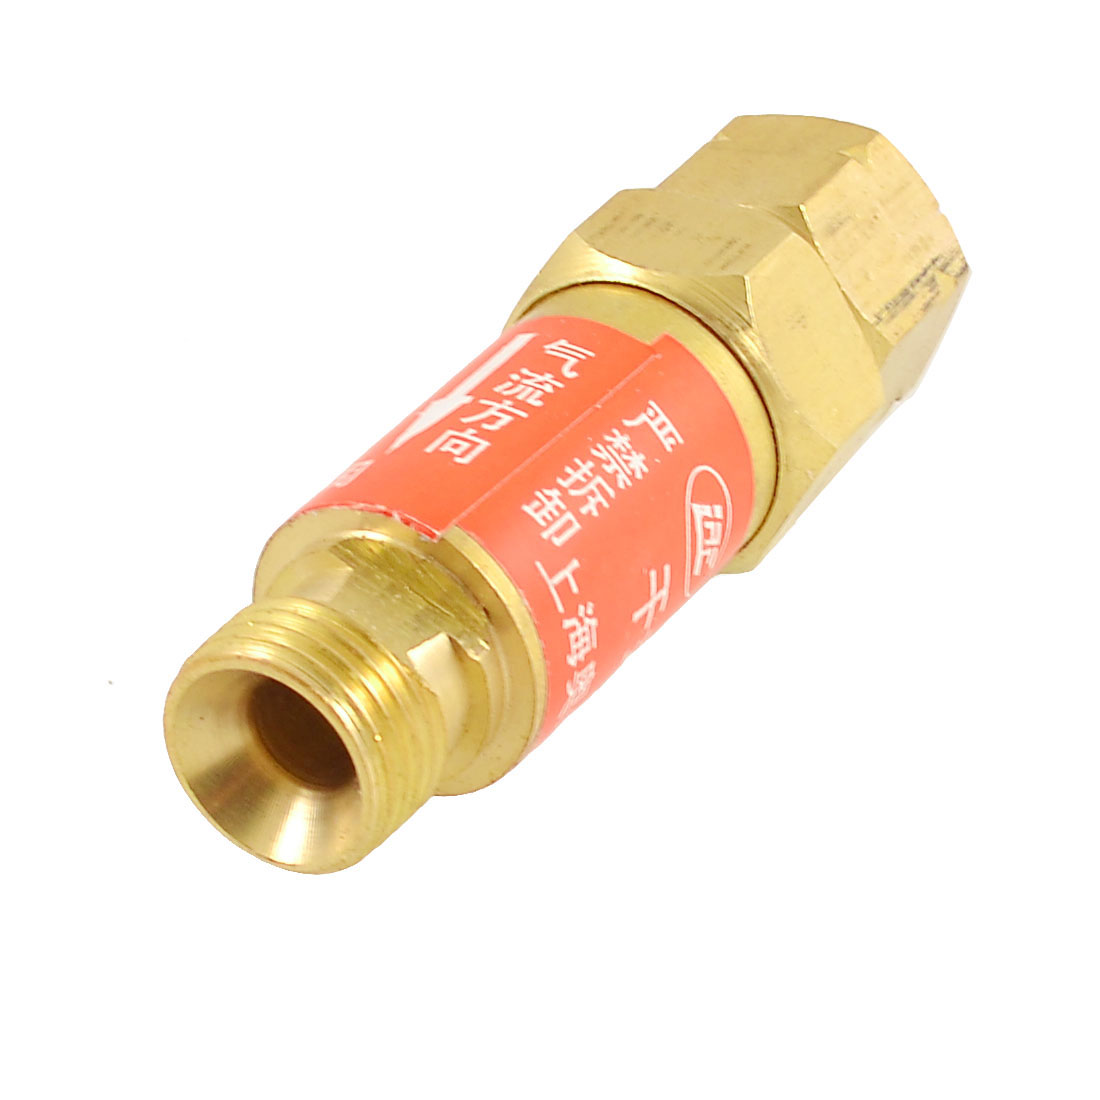 HF-2 Metal Flashback Arrestor Acetylene Gas Check Valve Replacements